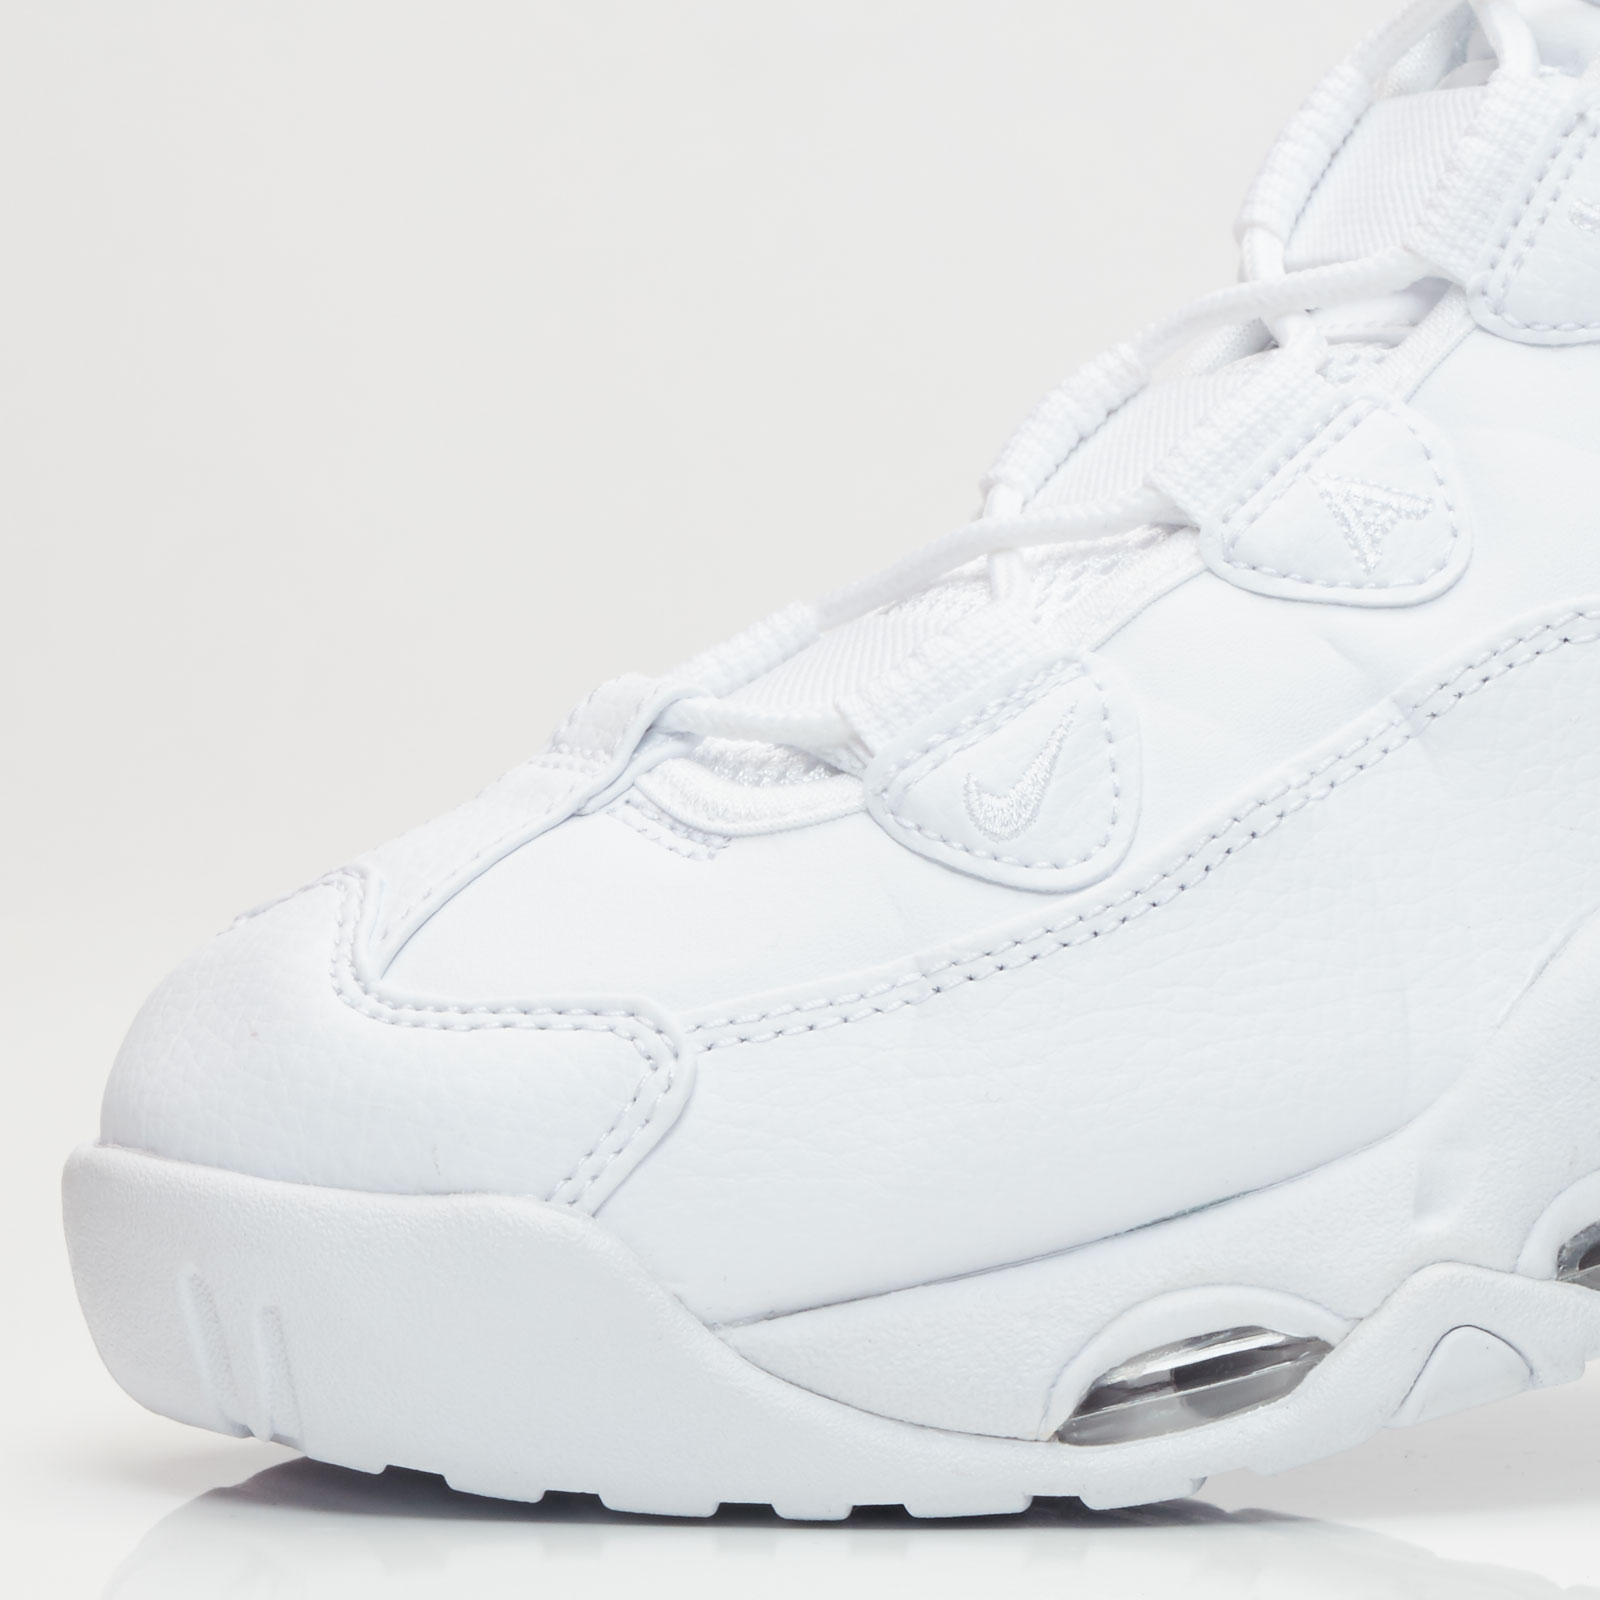 95 Max Nike 100 Sneakersnstuff 922935 Uptempo Air Avfrqaw Sneakers AAYXp0